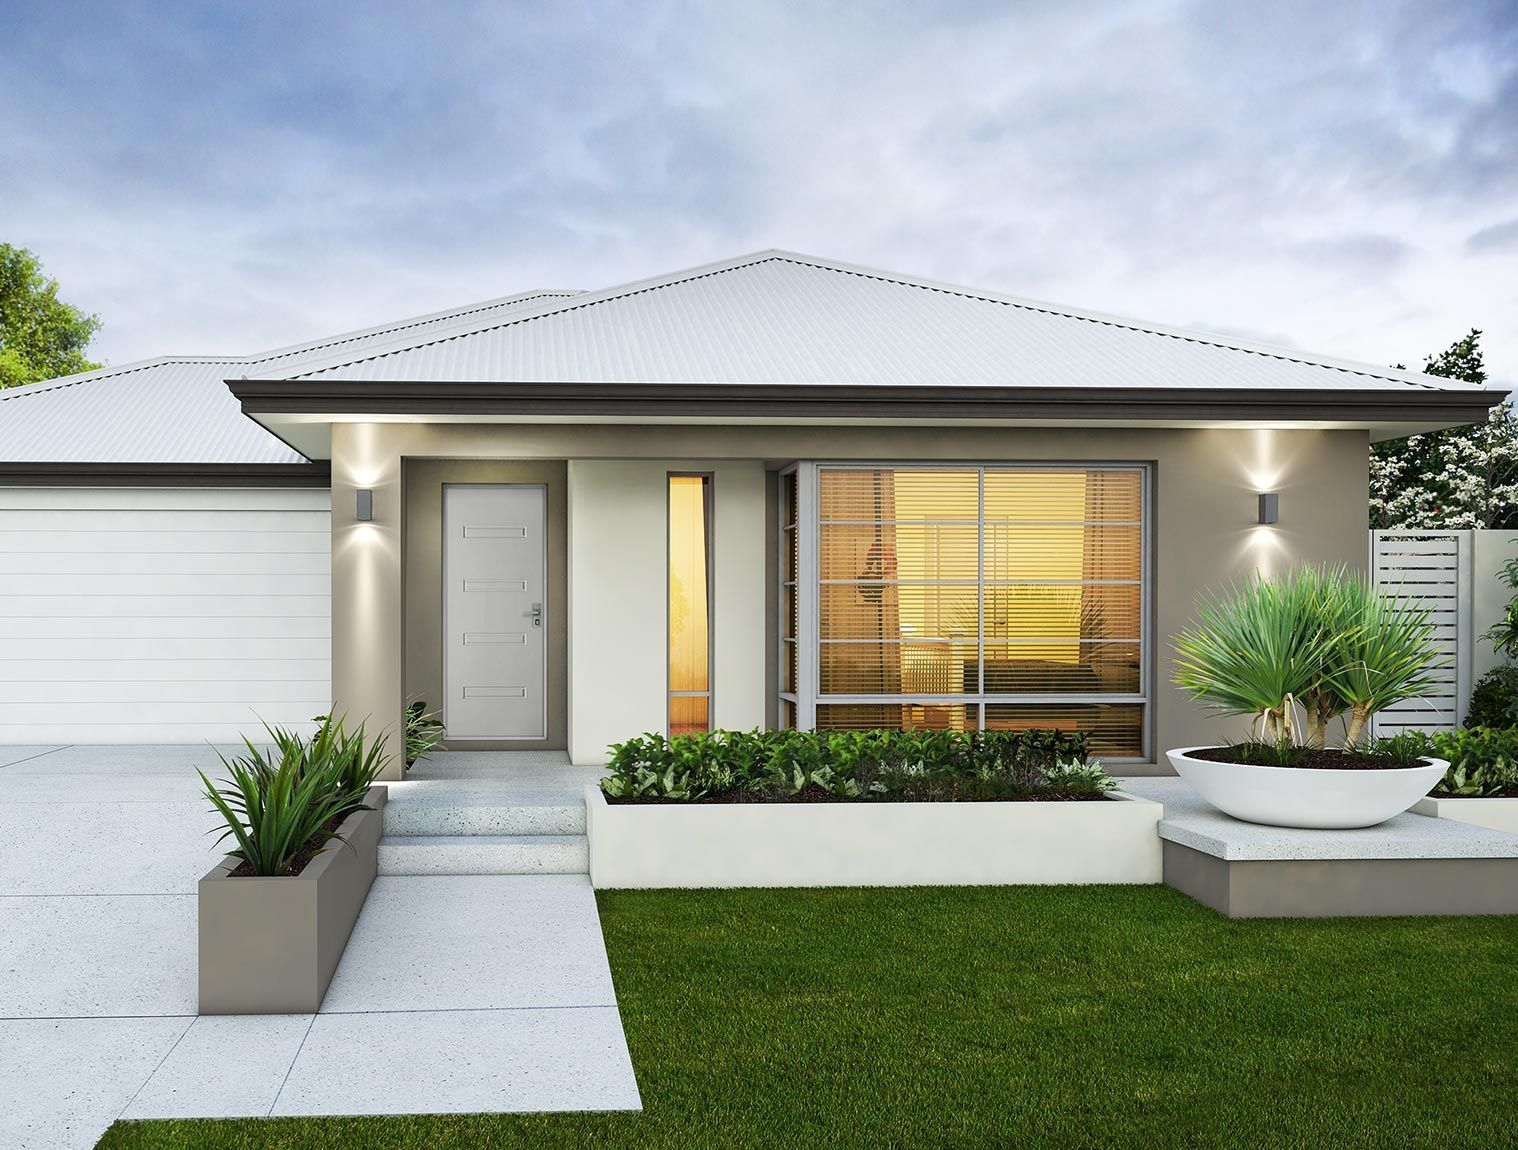 House Renovations In Tauranga At Reasonable Cost We Offer A Great Range Of Builder In Tauranga Give Exterior House Colors Facade House House Exterior